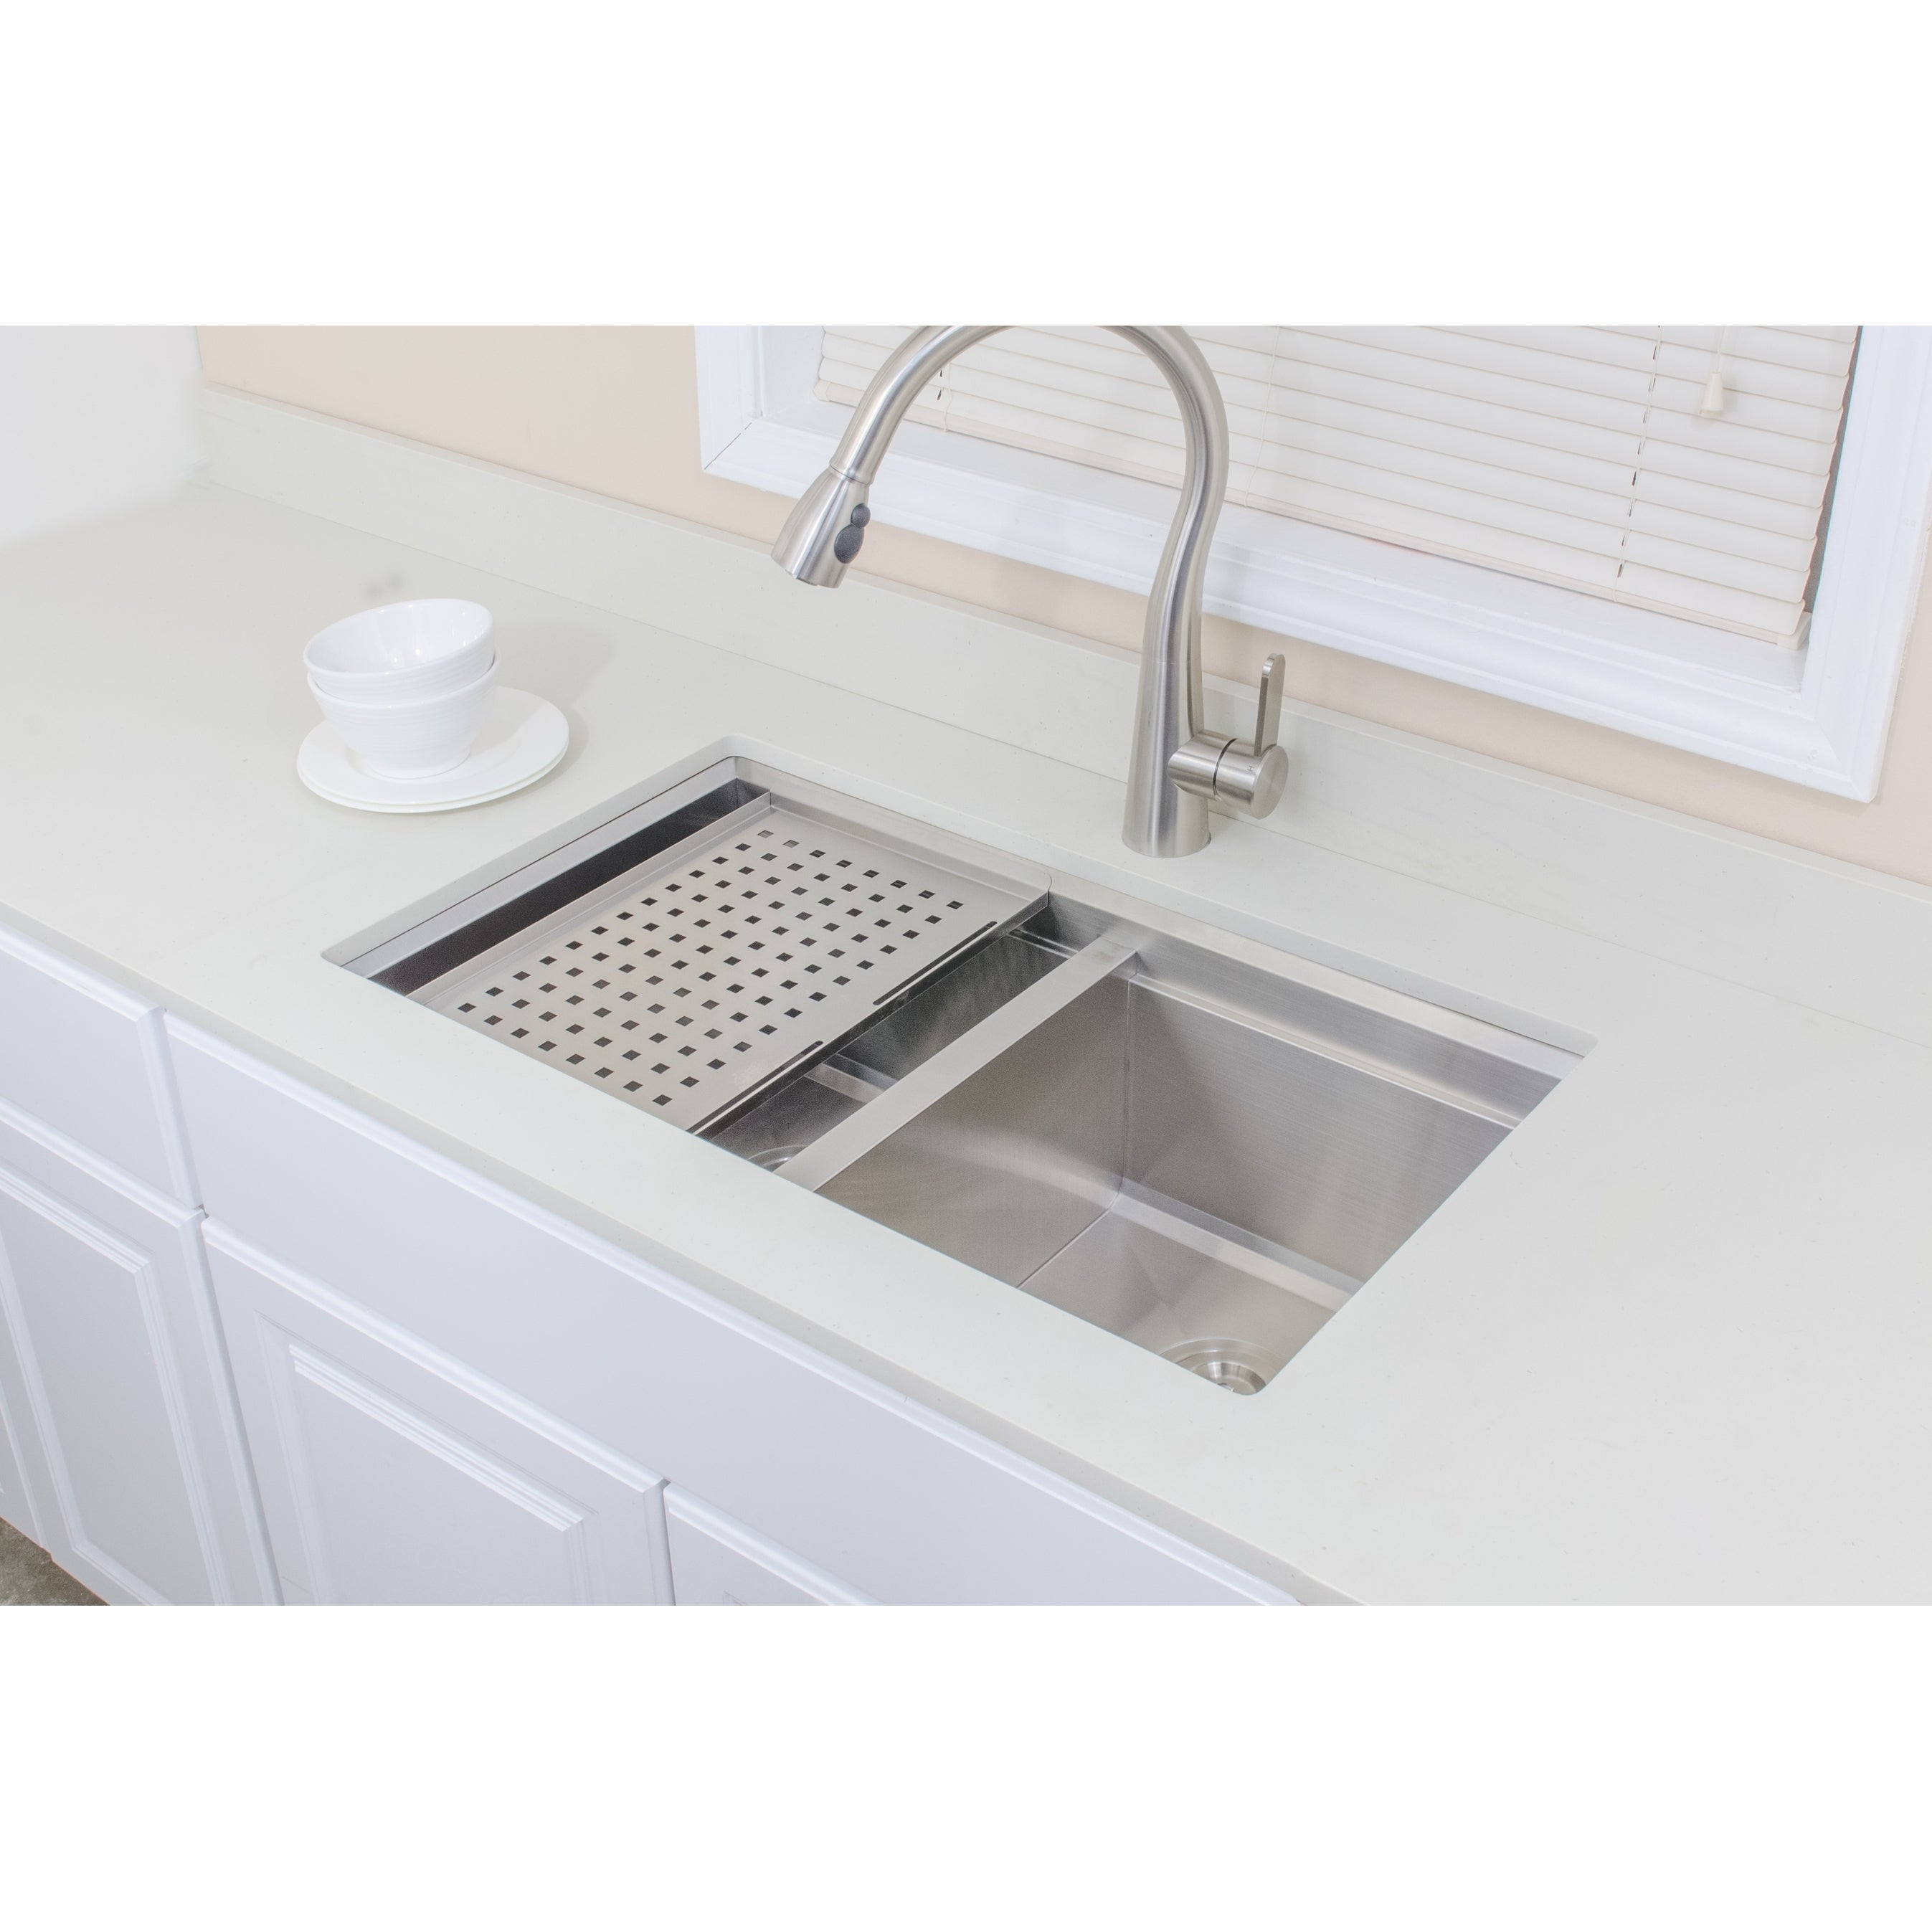 Shop Wells Sinkware 3D Series 32-inch Undermount 50-50 Double ... on stainless steel trough sinks, copper kitchen sinks, stainless steel undermount double sink, farmhouse kitchen sinks, integrated kitchen sinks, stainless steel work sinks, stainless steel sink grids, franke kitchen sinks, discontinued kitchen sinks, stainless steel single undermount sink, stainless steel sink protector, stainless steel drop in kitchen sinks, elegant kitchen sinks, american standard kitchen sinks, stainless steel deep sink, low divide kitchen sinks, stainless steel sink with drainboard, stainless steel sinks product, kraus kitchen sinks, undermount bathroom sinks,